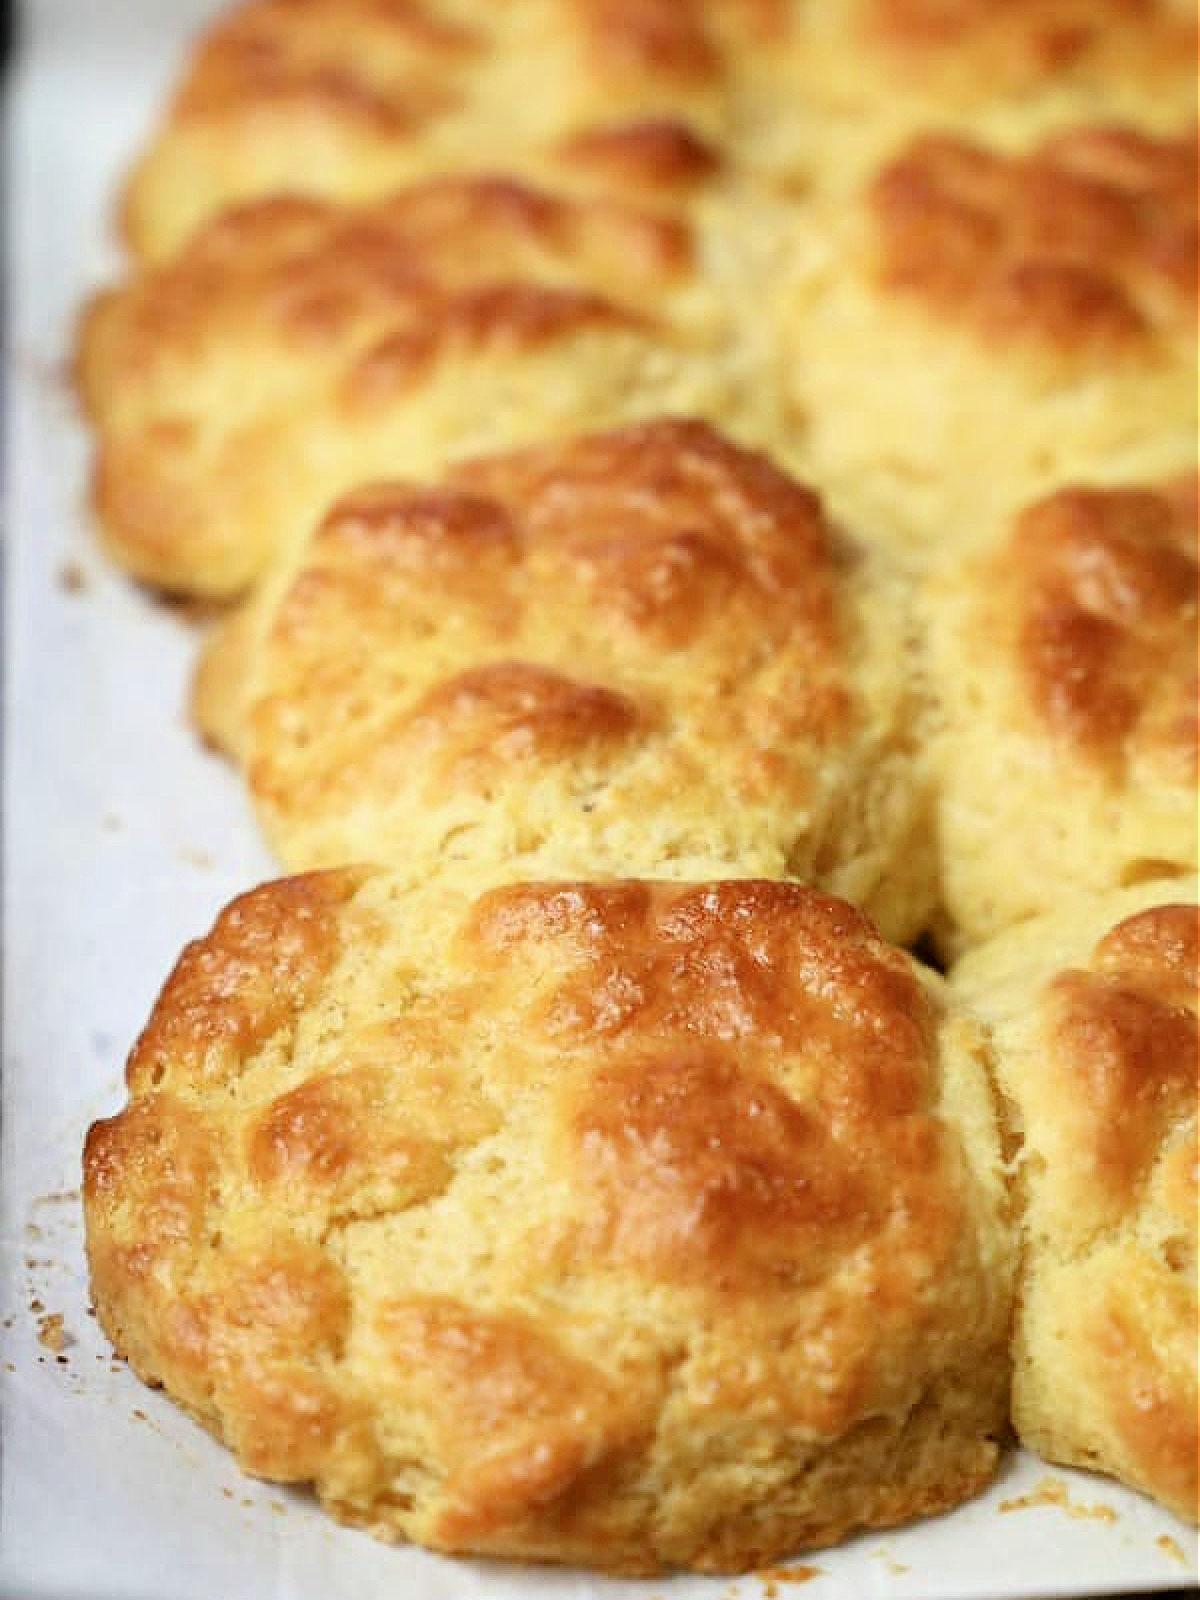 Row of biscuits on parchment paper.